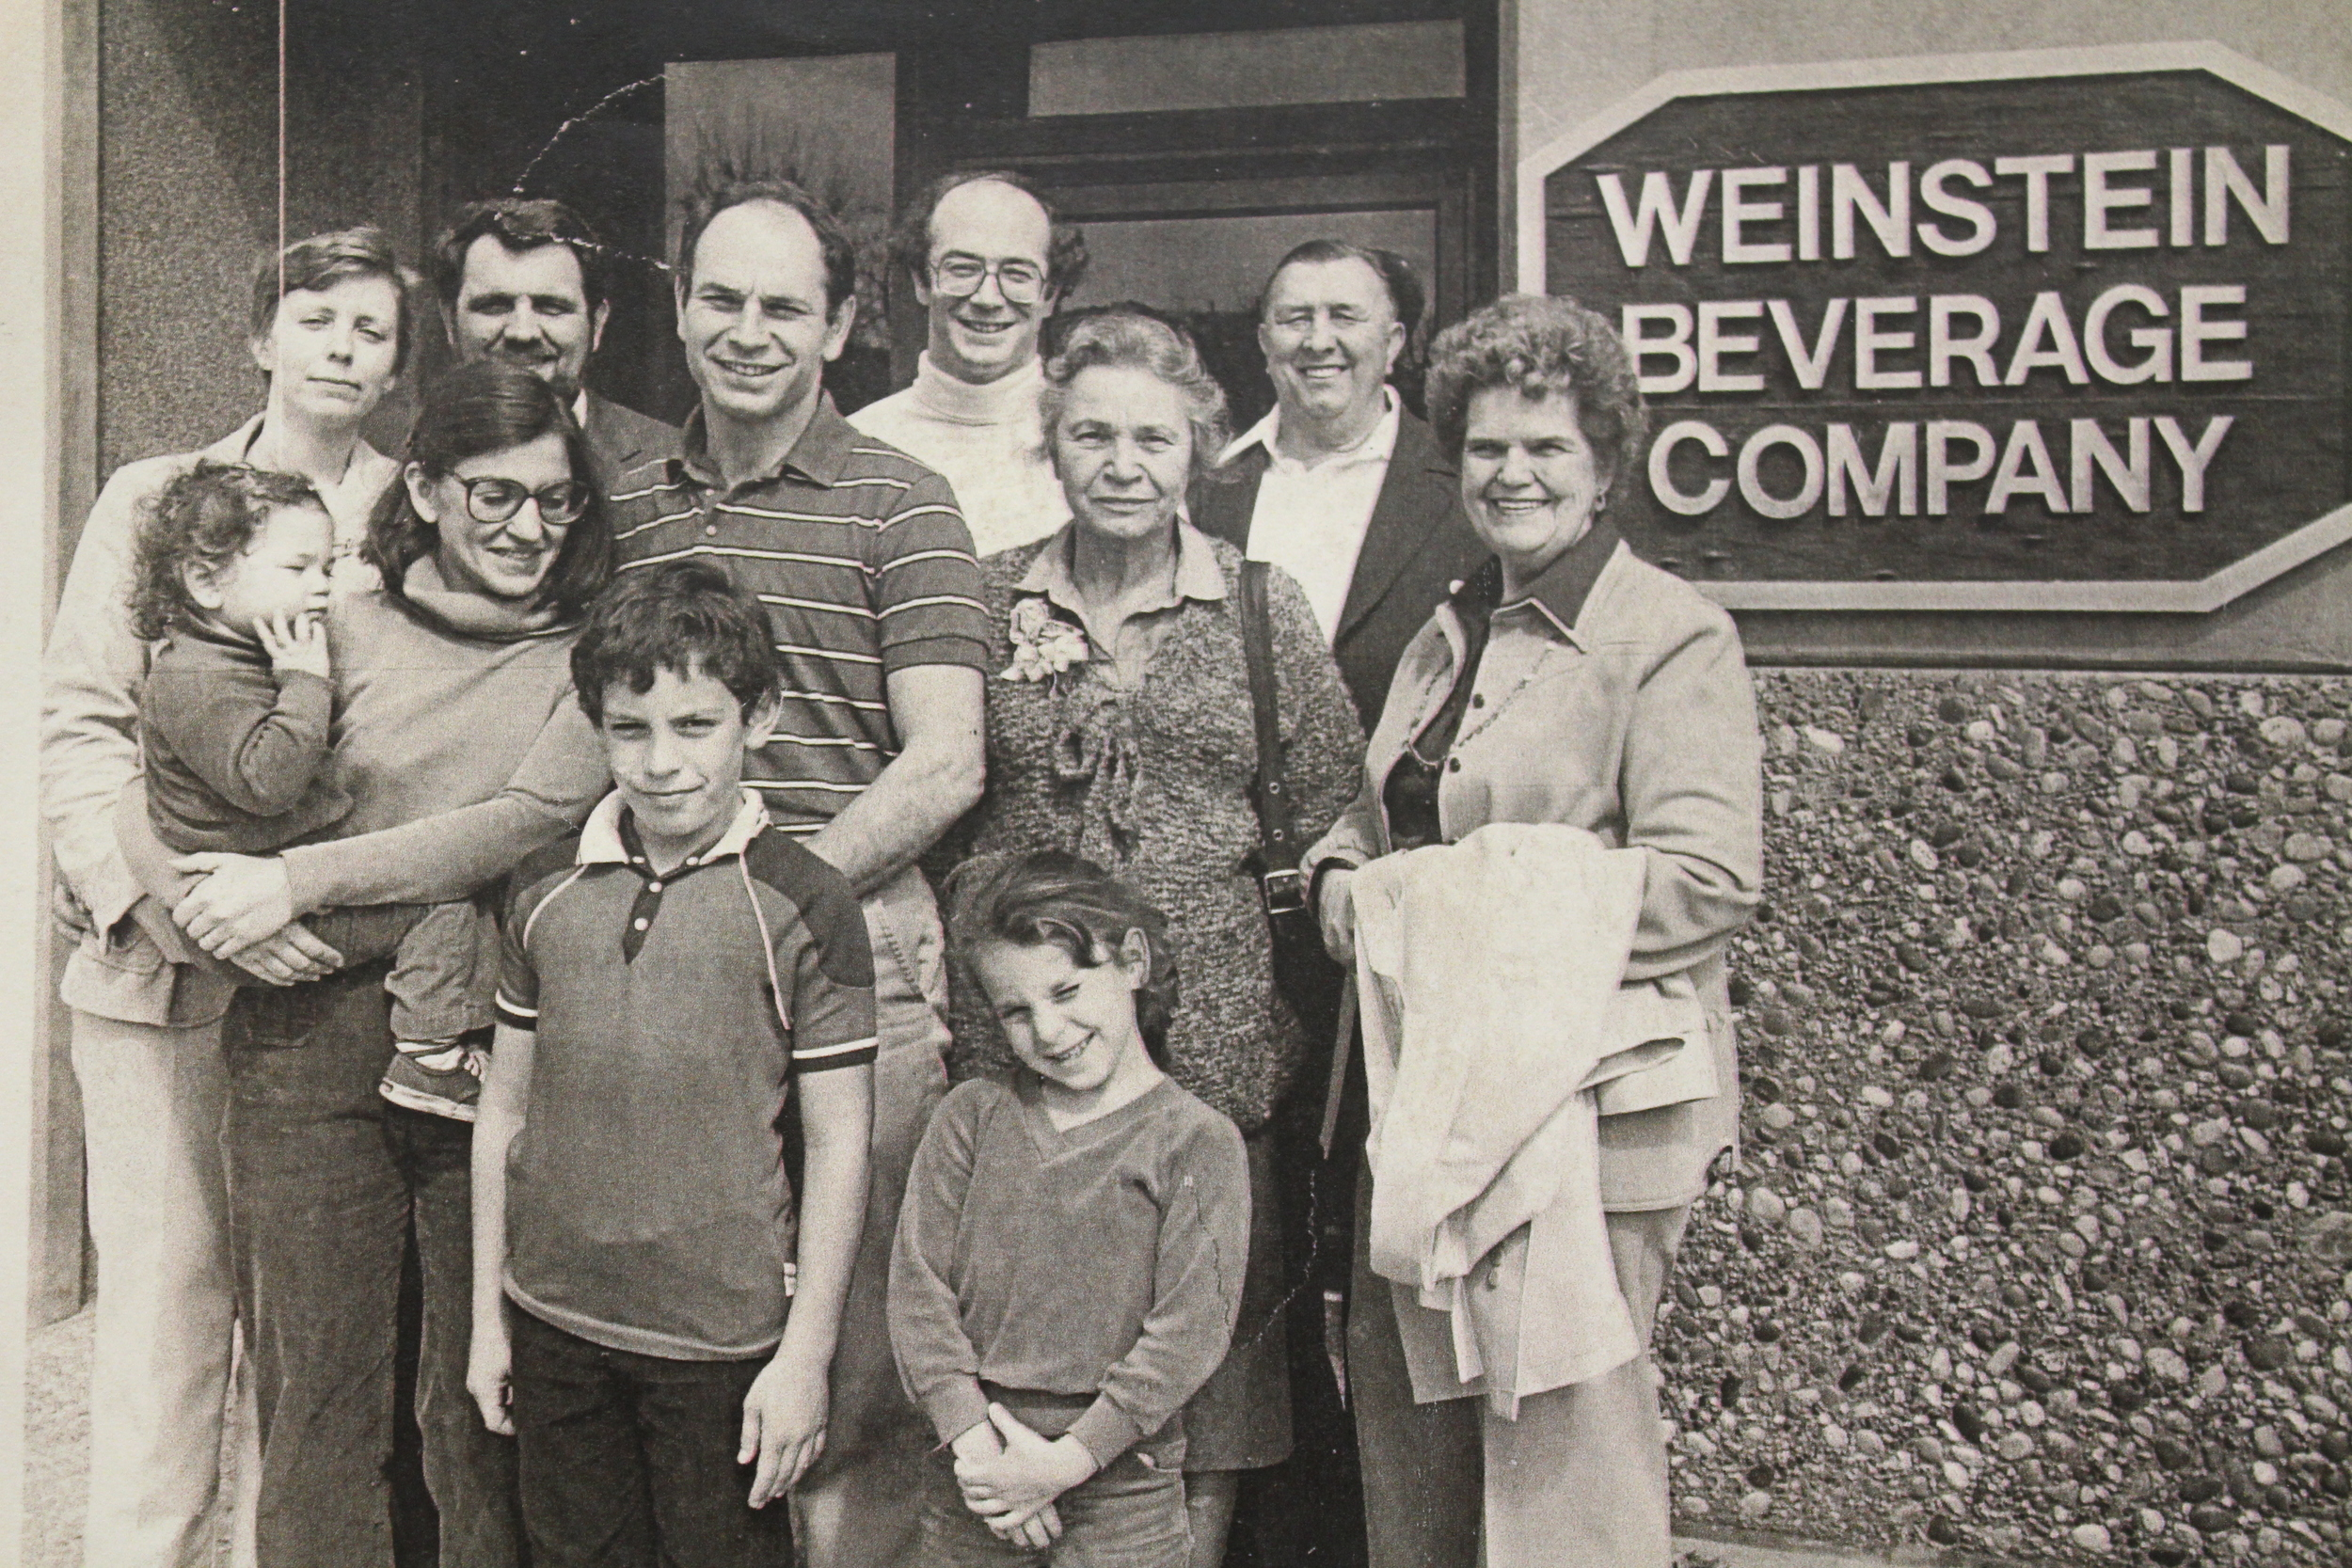 Pat Weinstein, Susan Landon, Eileen Weinstein, family, and employees of Weinstein Beverage Company.